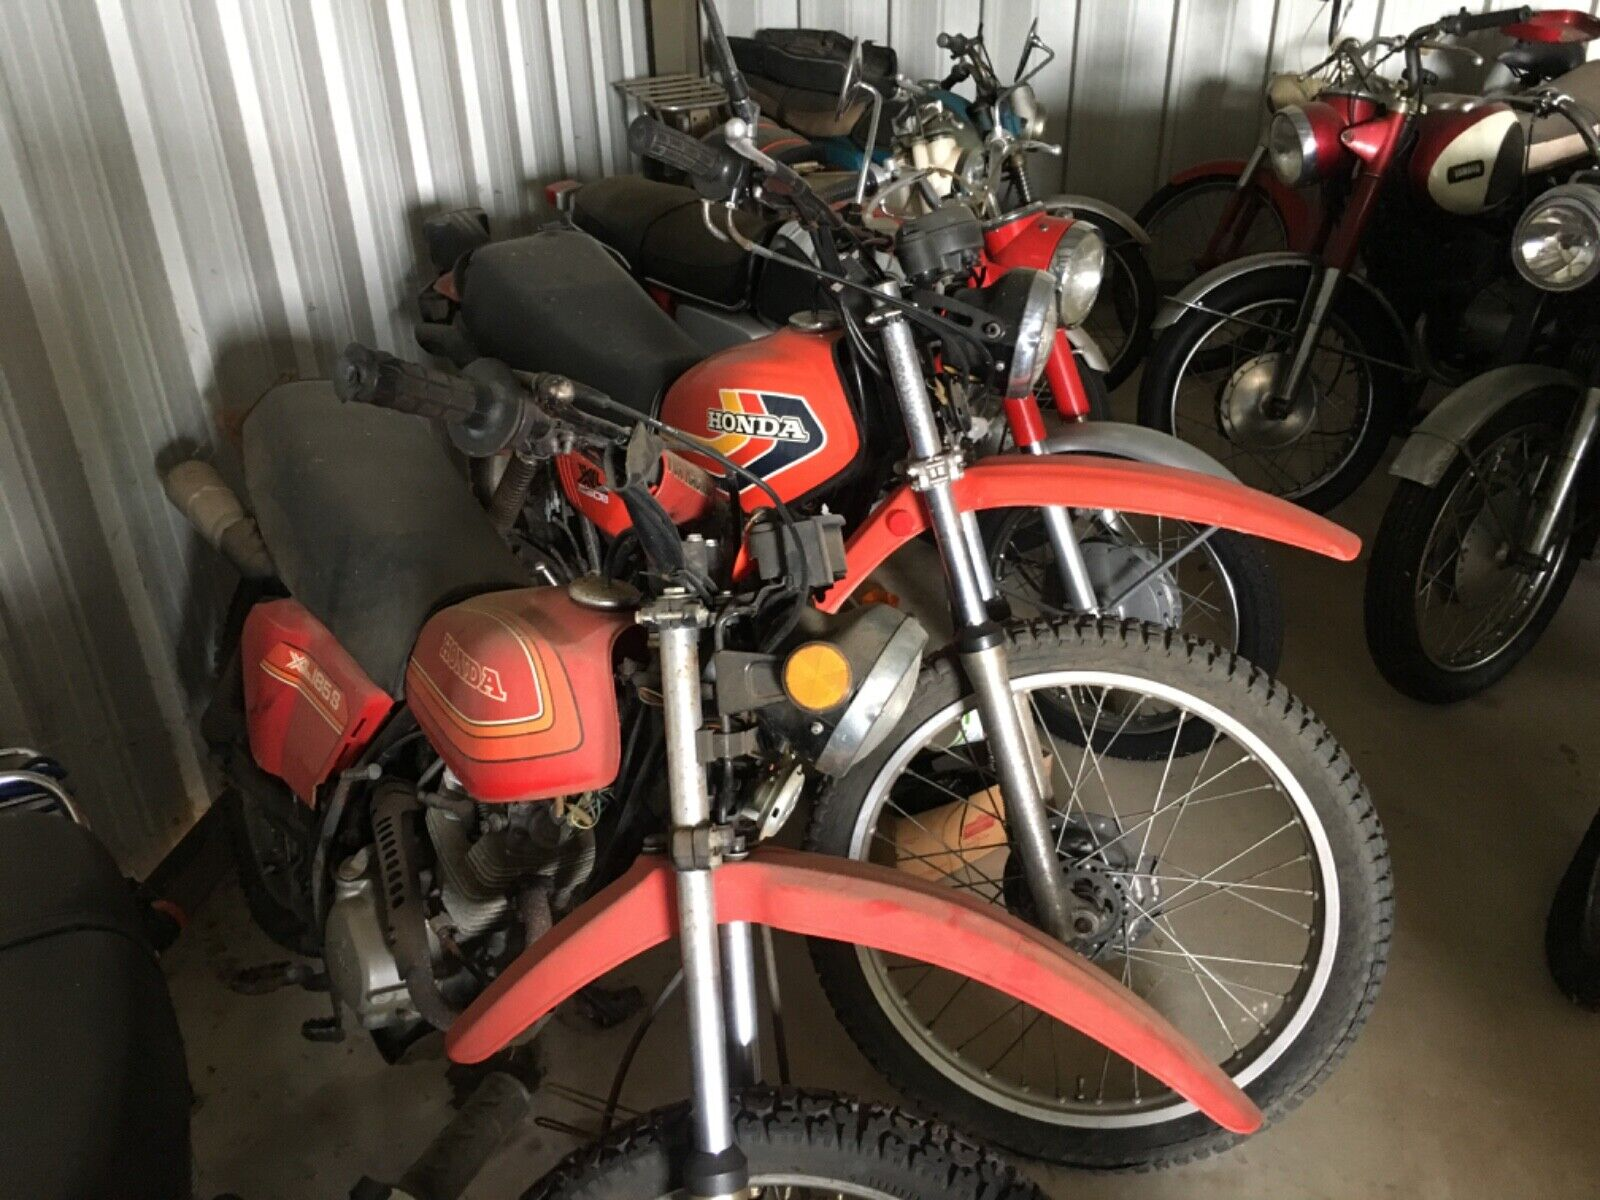 Picture of A 1978 Honda Xl 250 /185 250